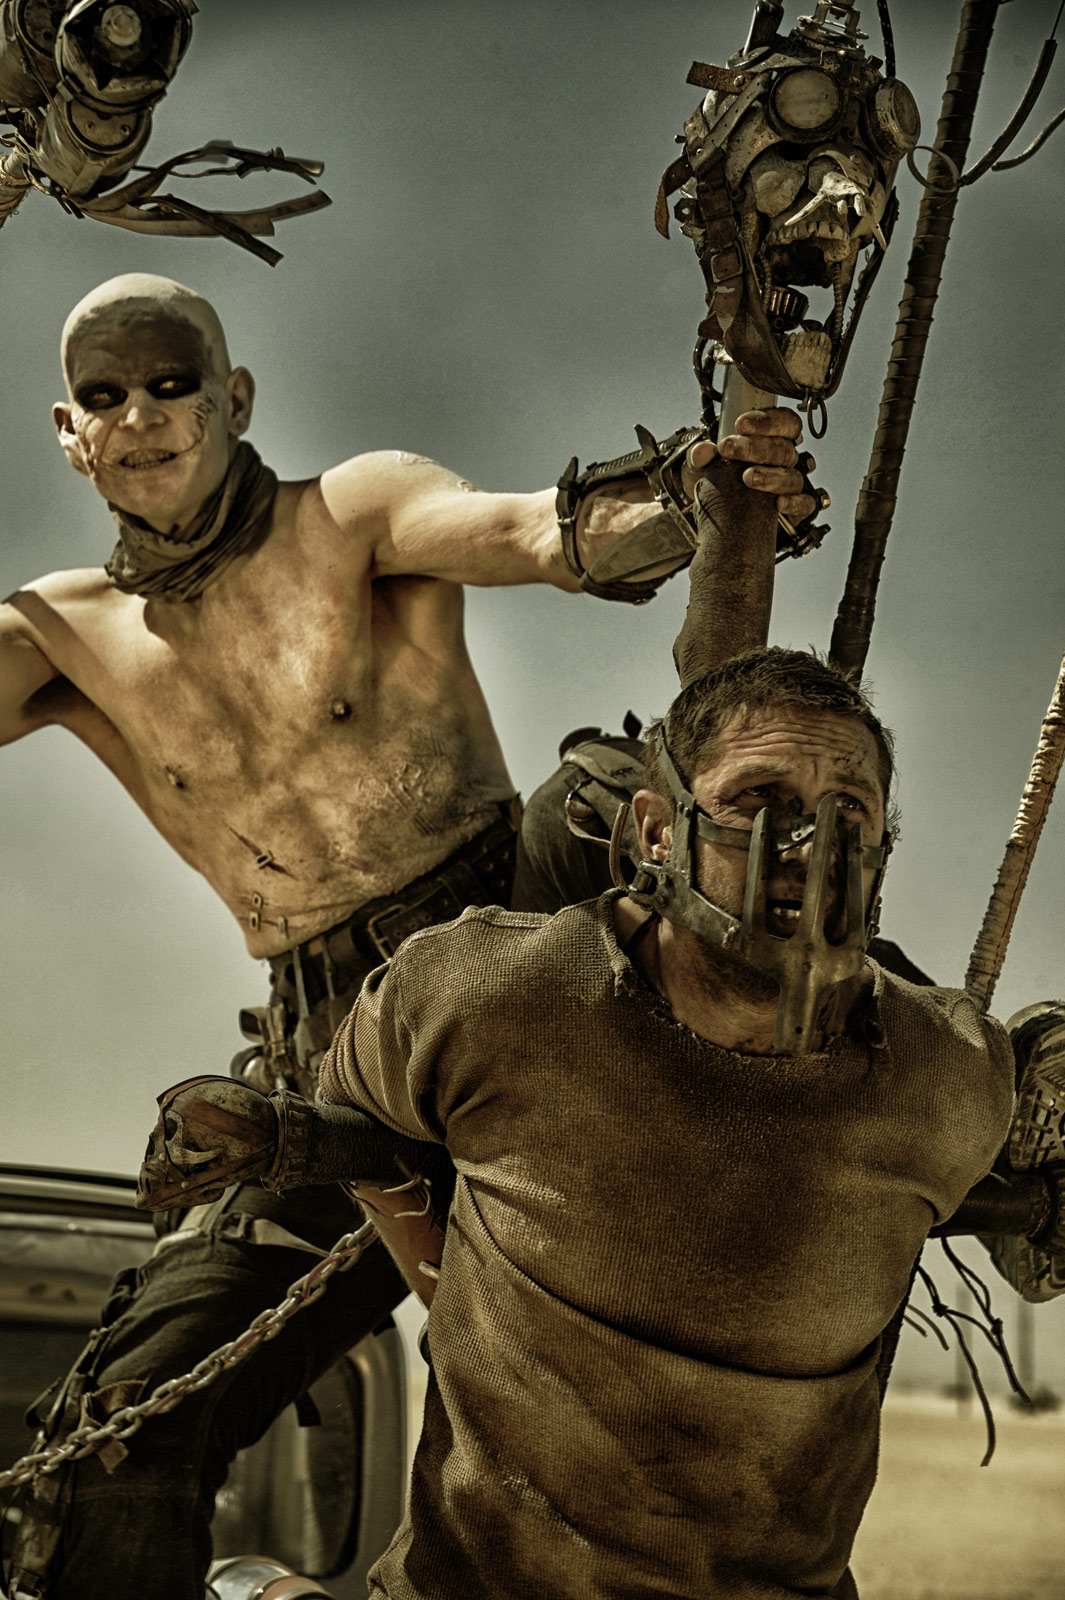 The best (in my humble opinion), was the trailer for mad max: fury road